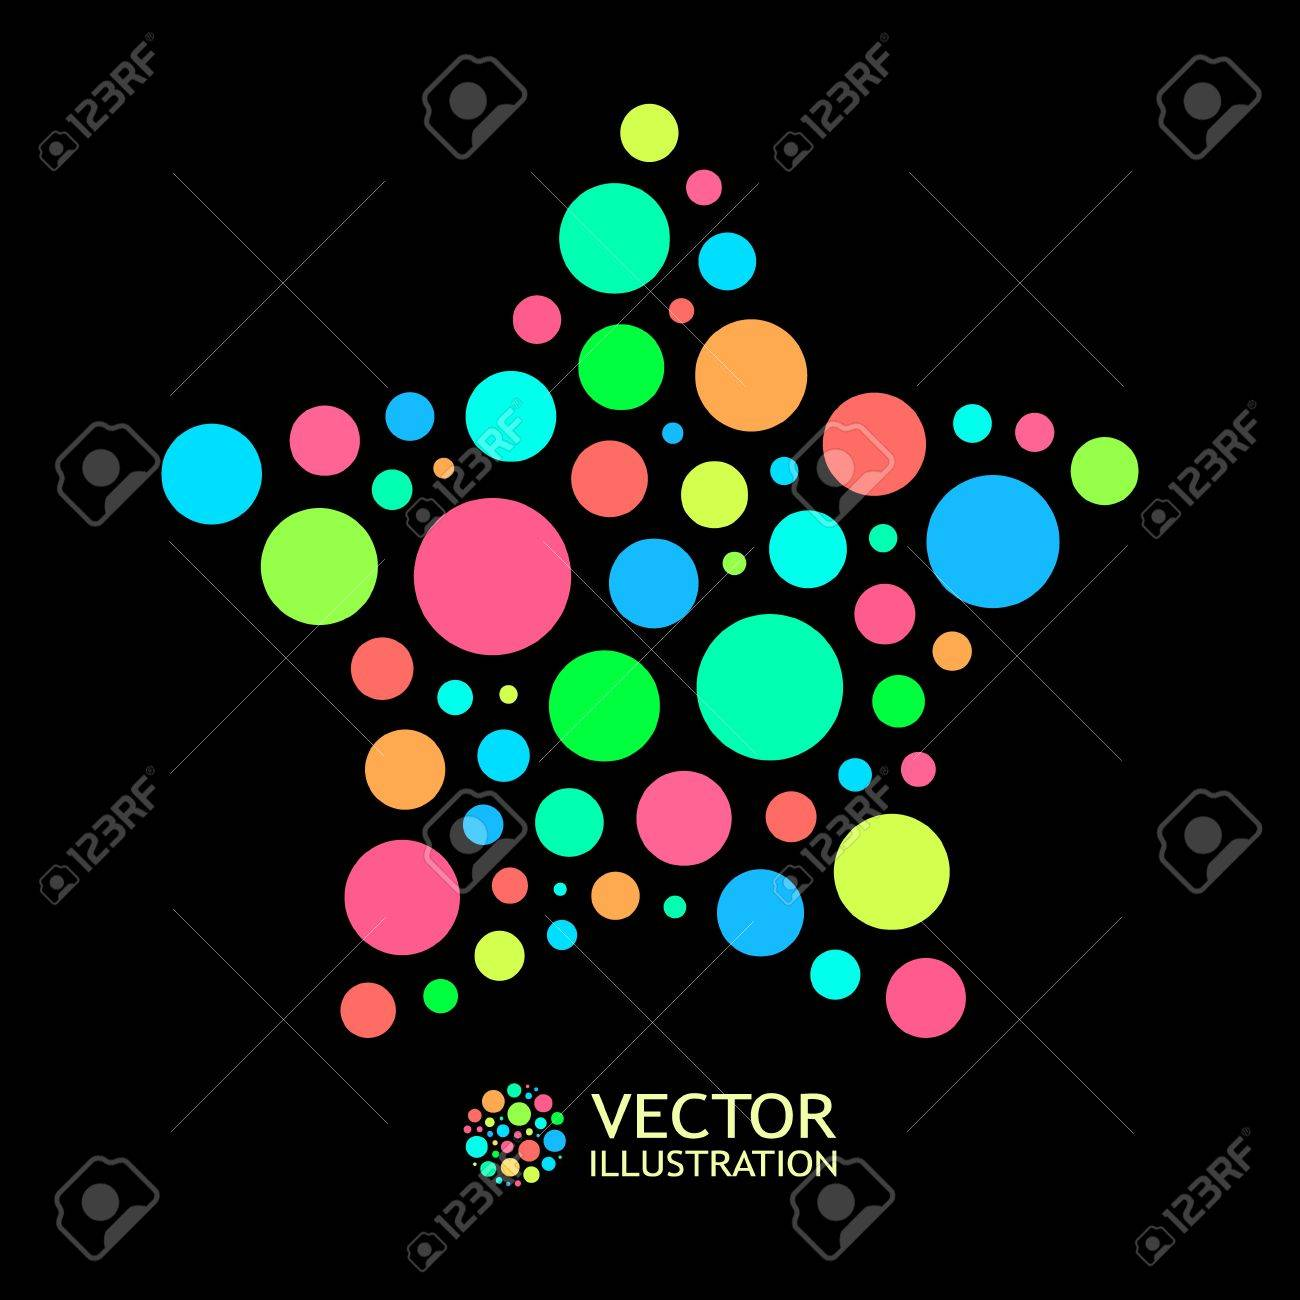 Colorful abstract background. Stock Vector - 11885575